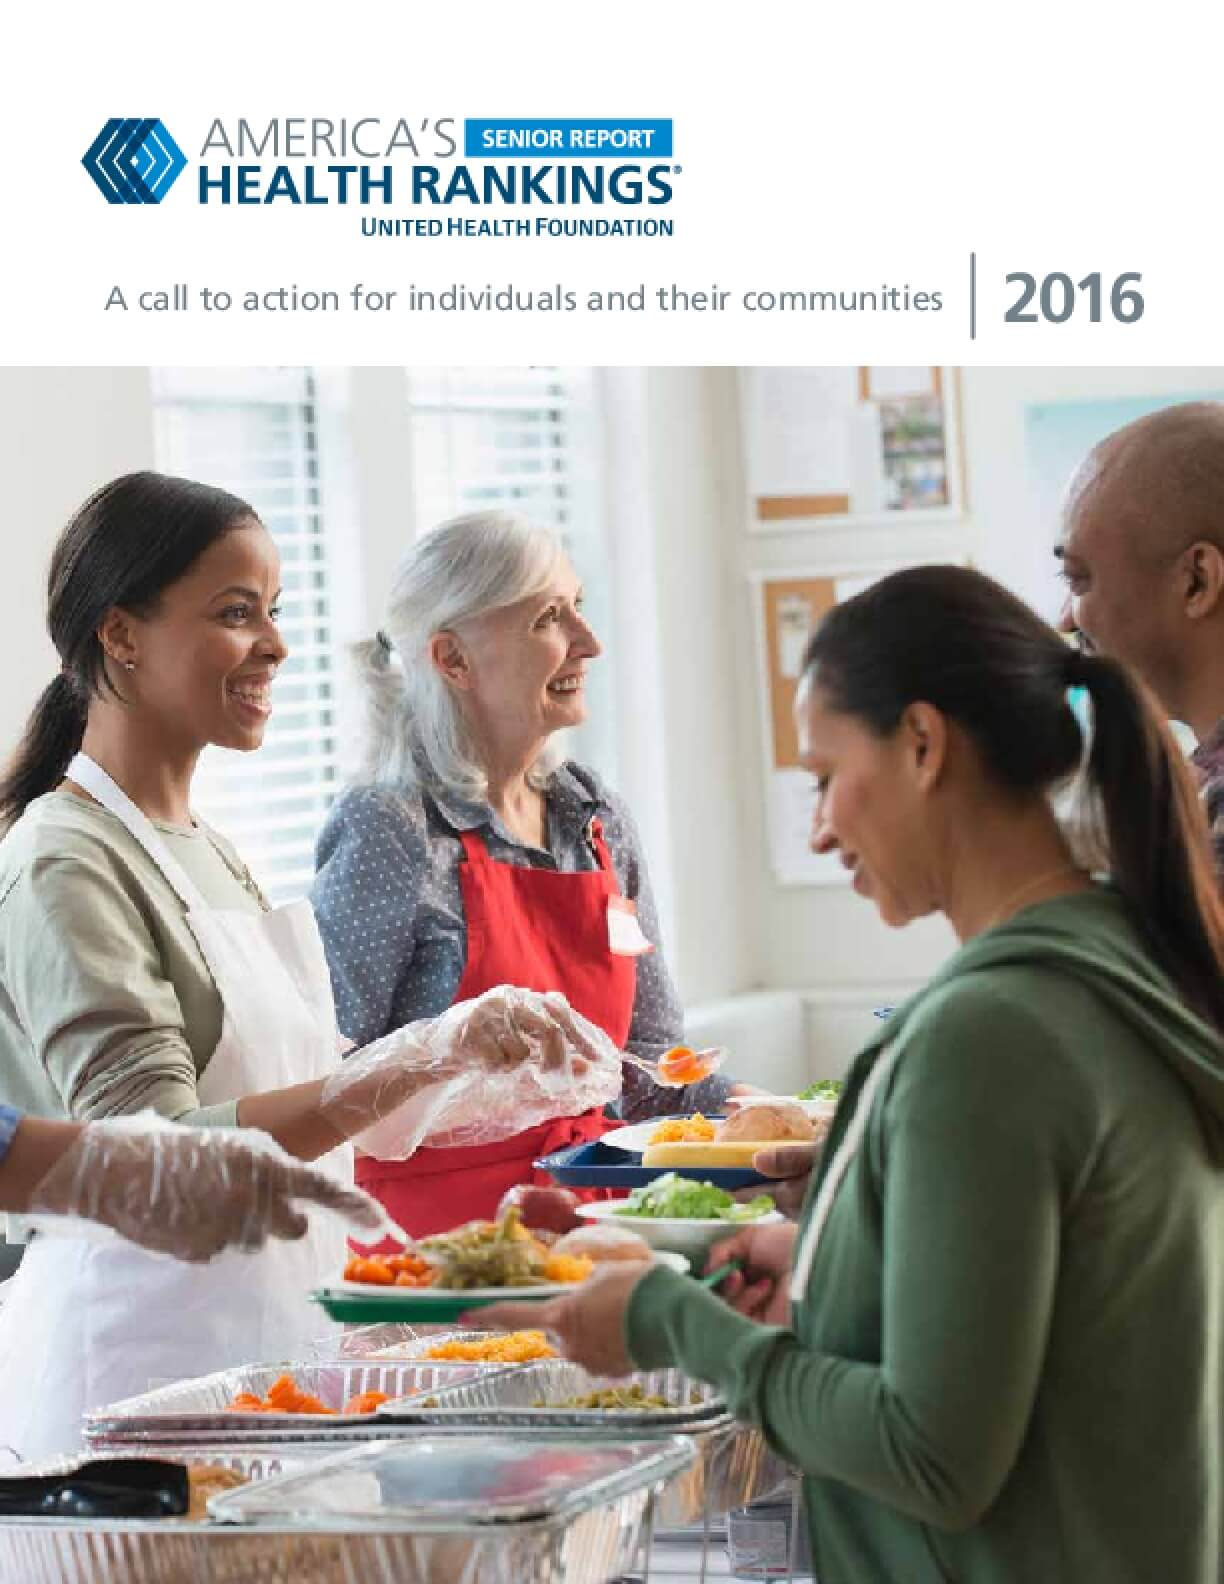 America's Health Rankings Senior Report: A Call to Action for Individuals and Their Communities, 2016 Edition